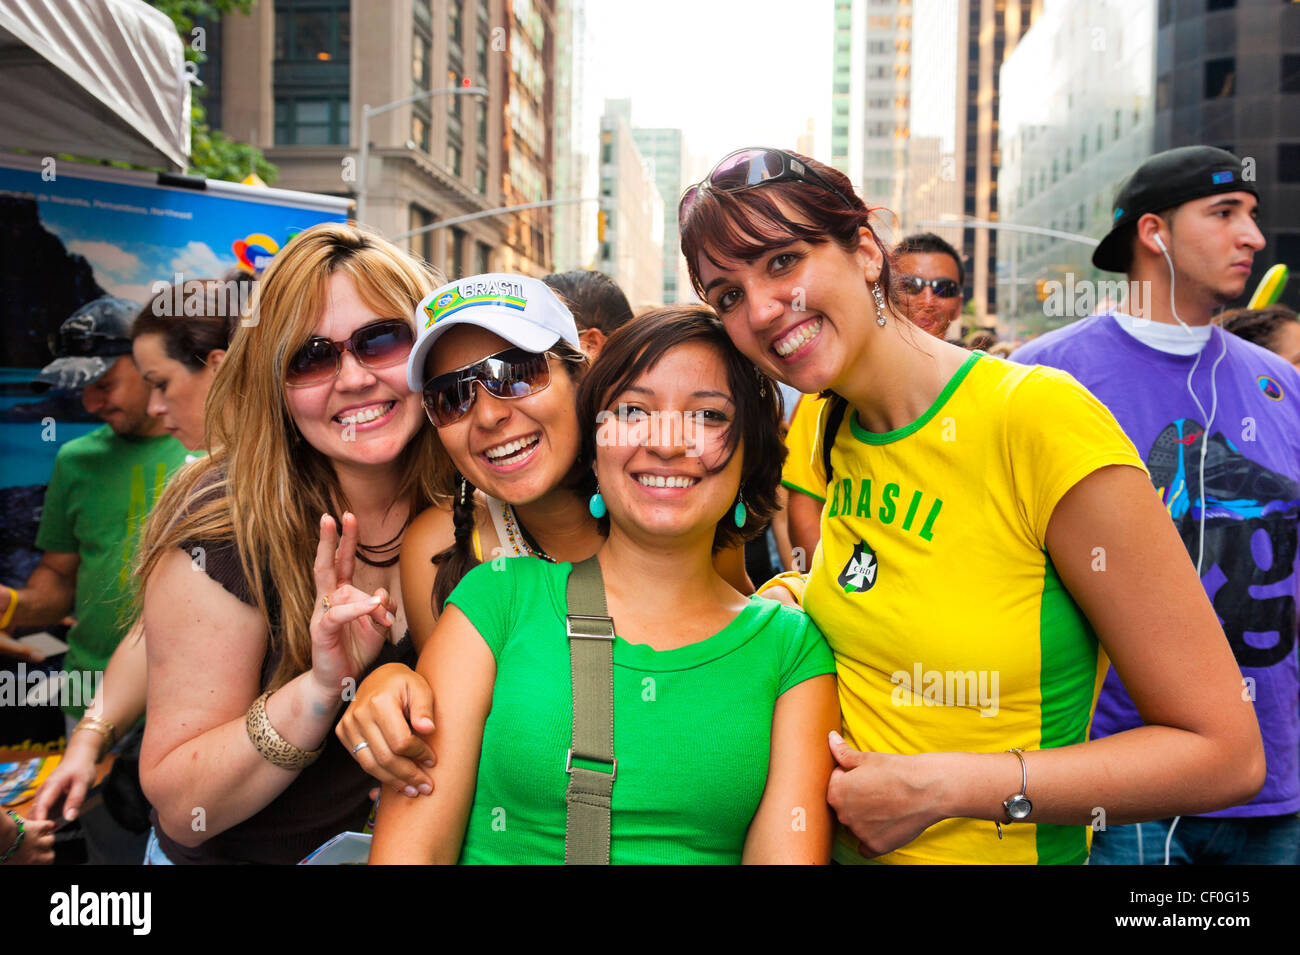 At Brazilian Day Festival, four happy young women in crowd, in Little Brazil, New York City, NY USA, on August 31, - Stock Image